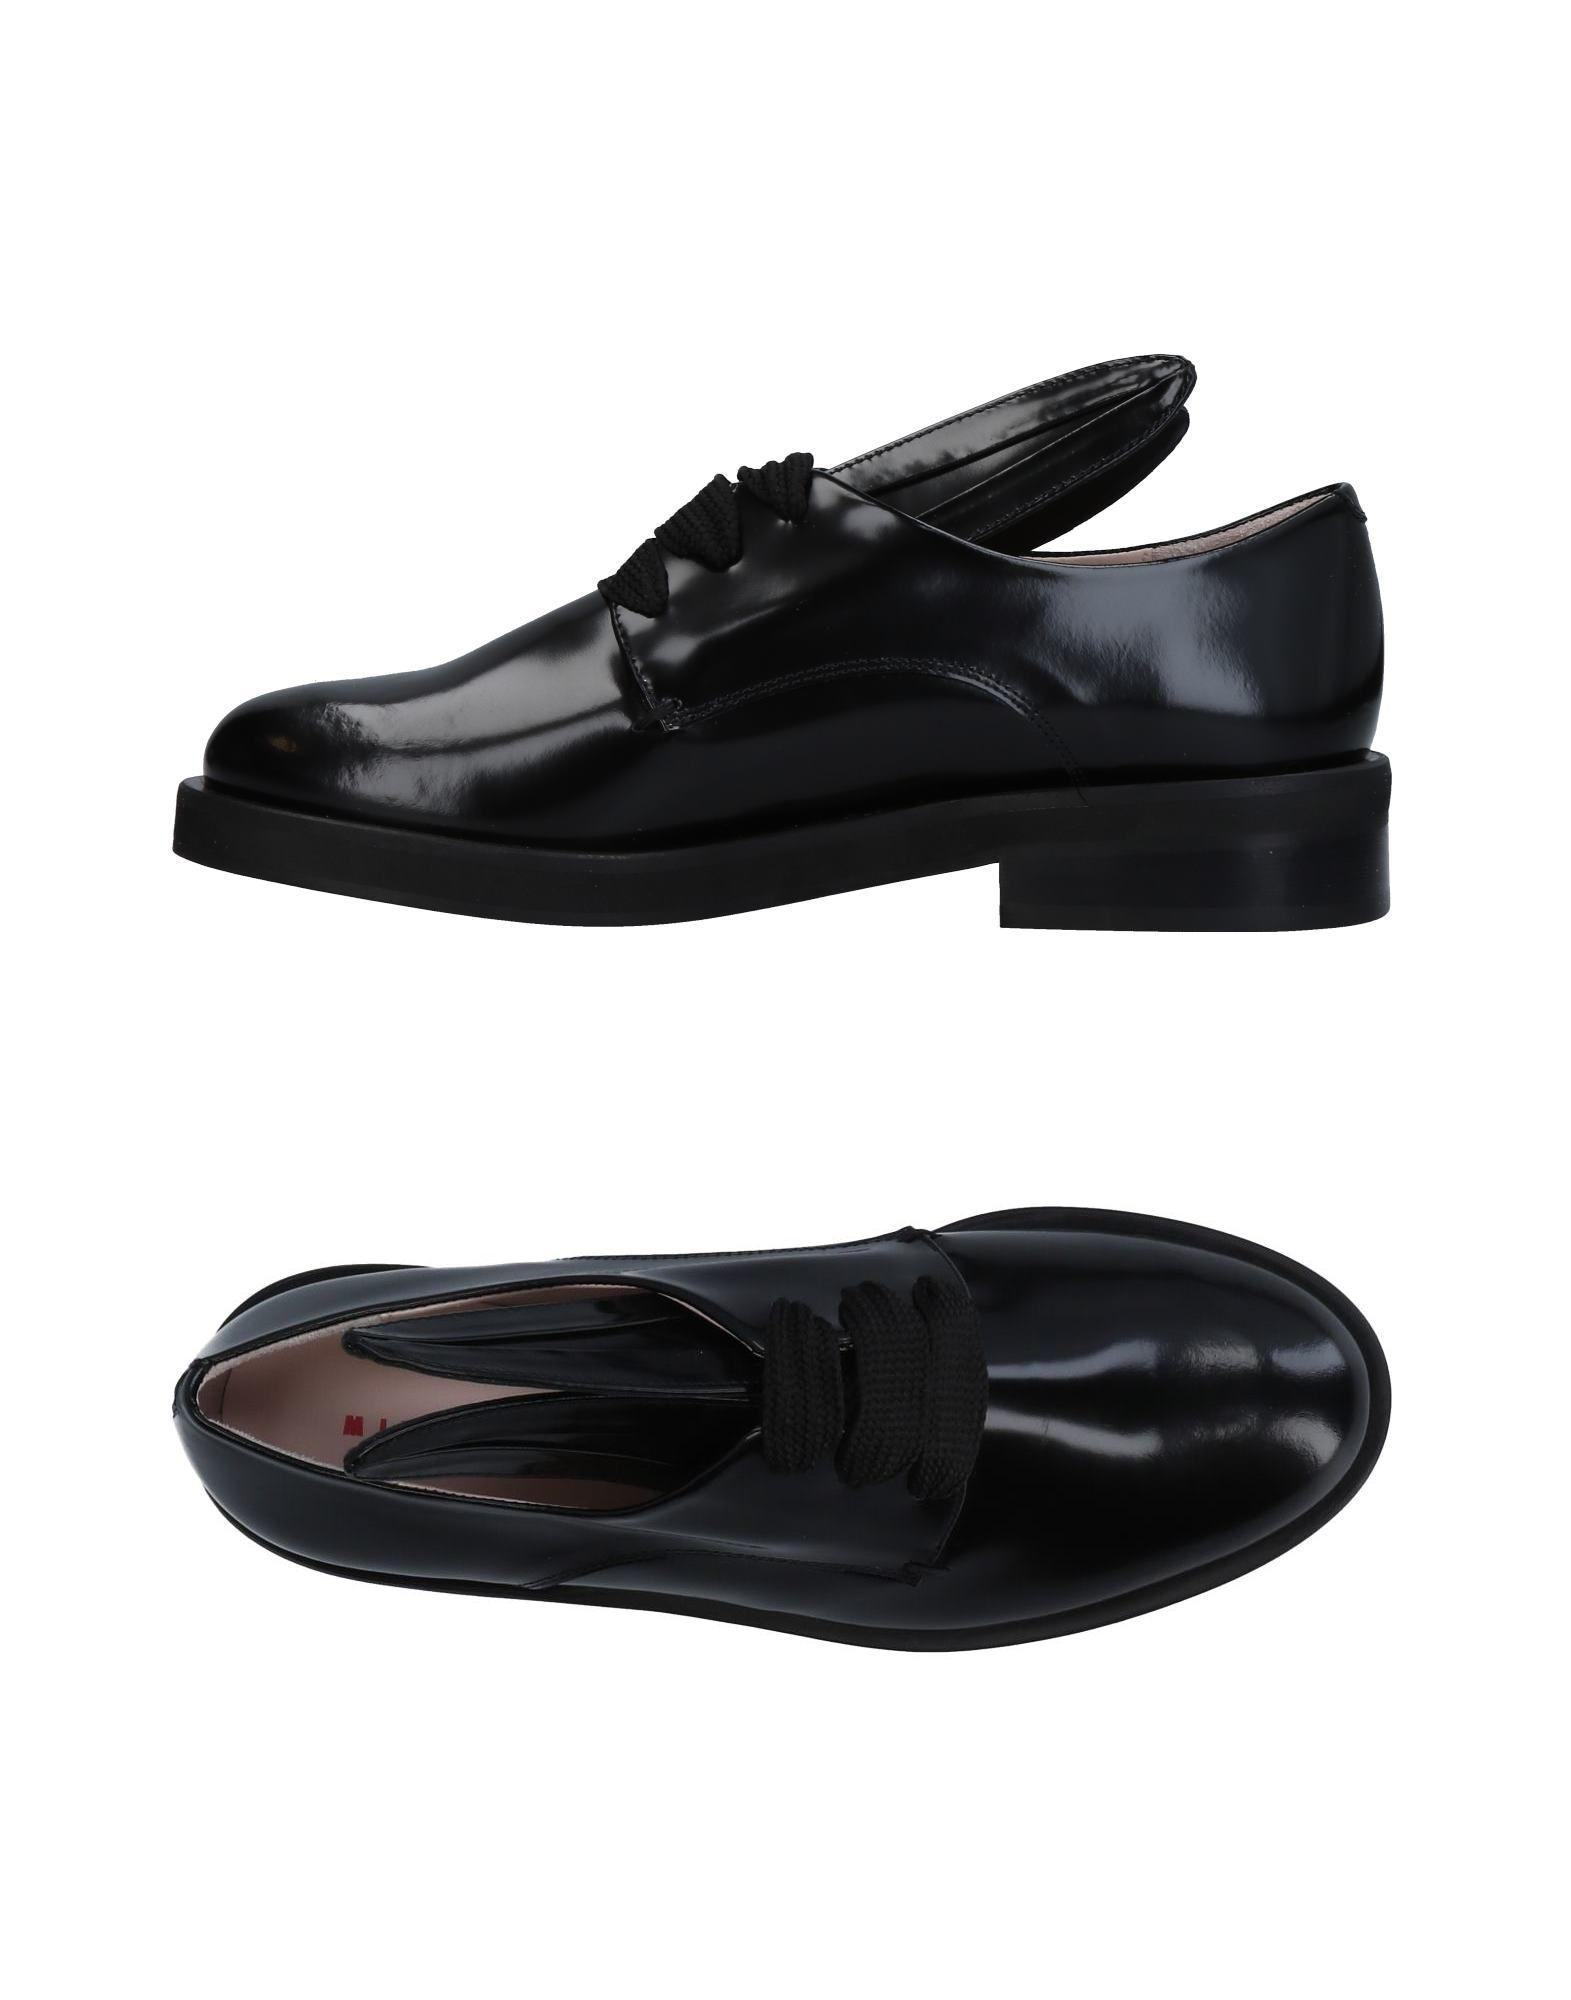 Minna Parikka Laced Shoes In Black